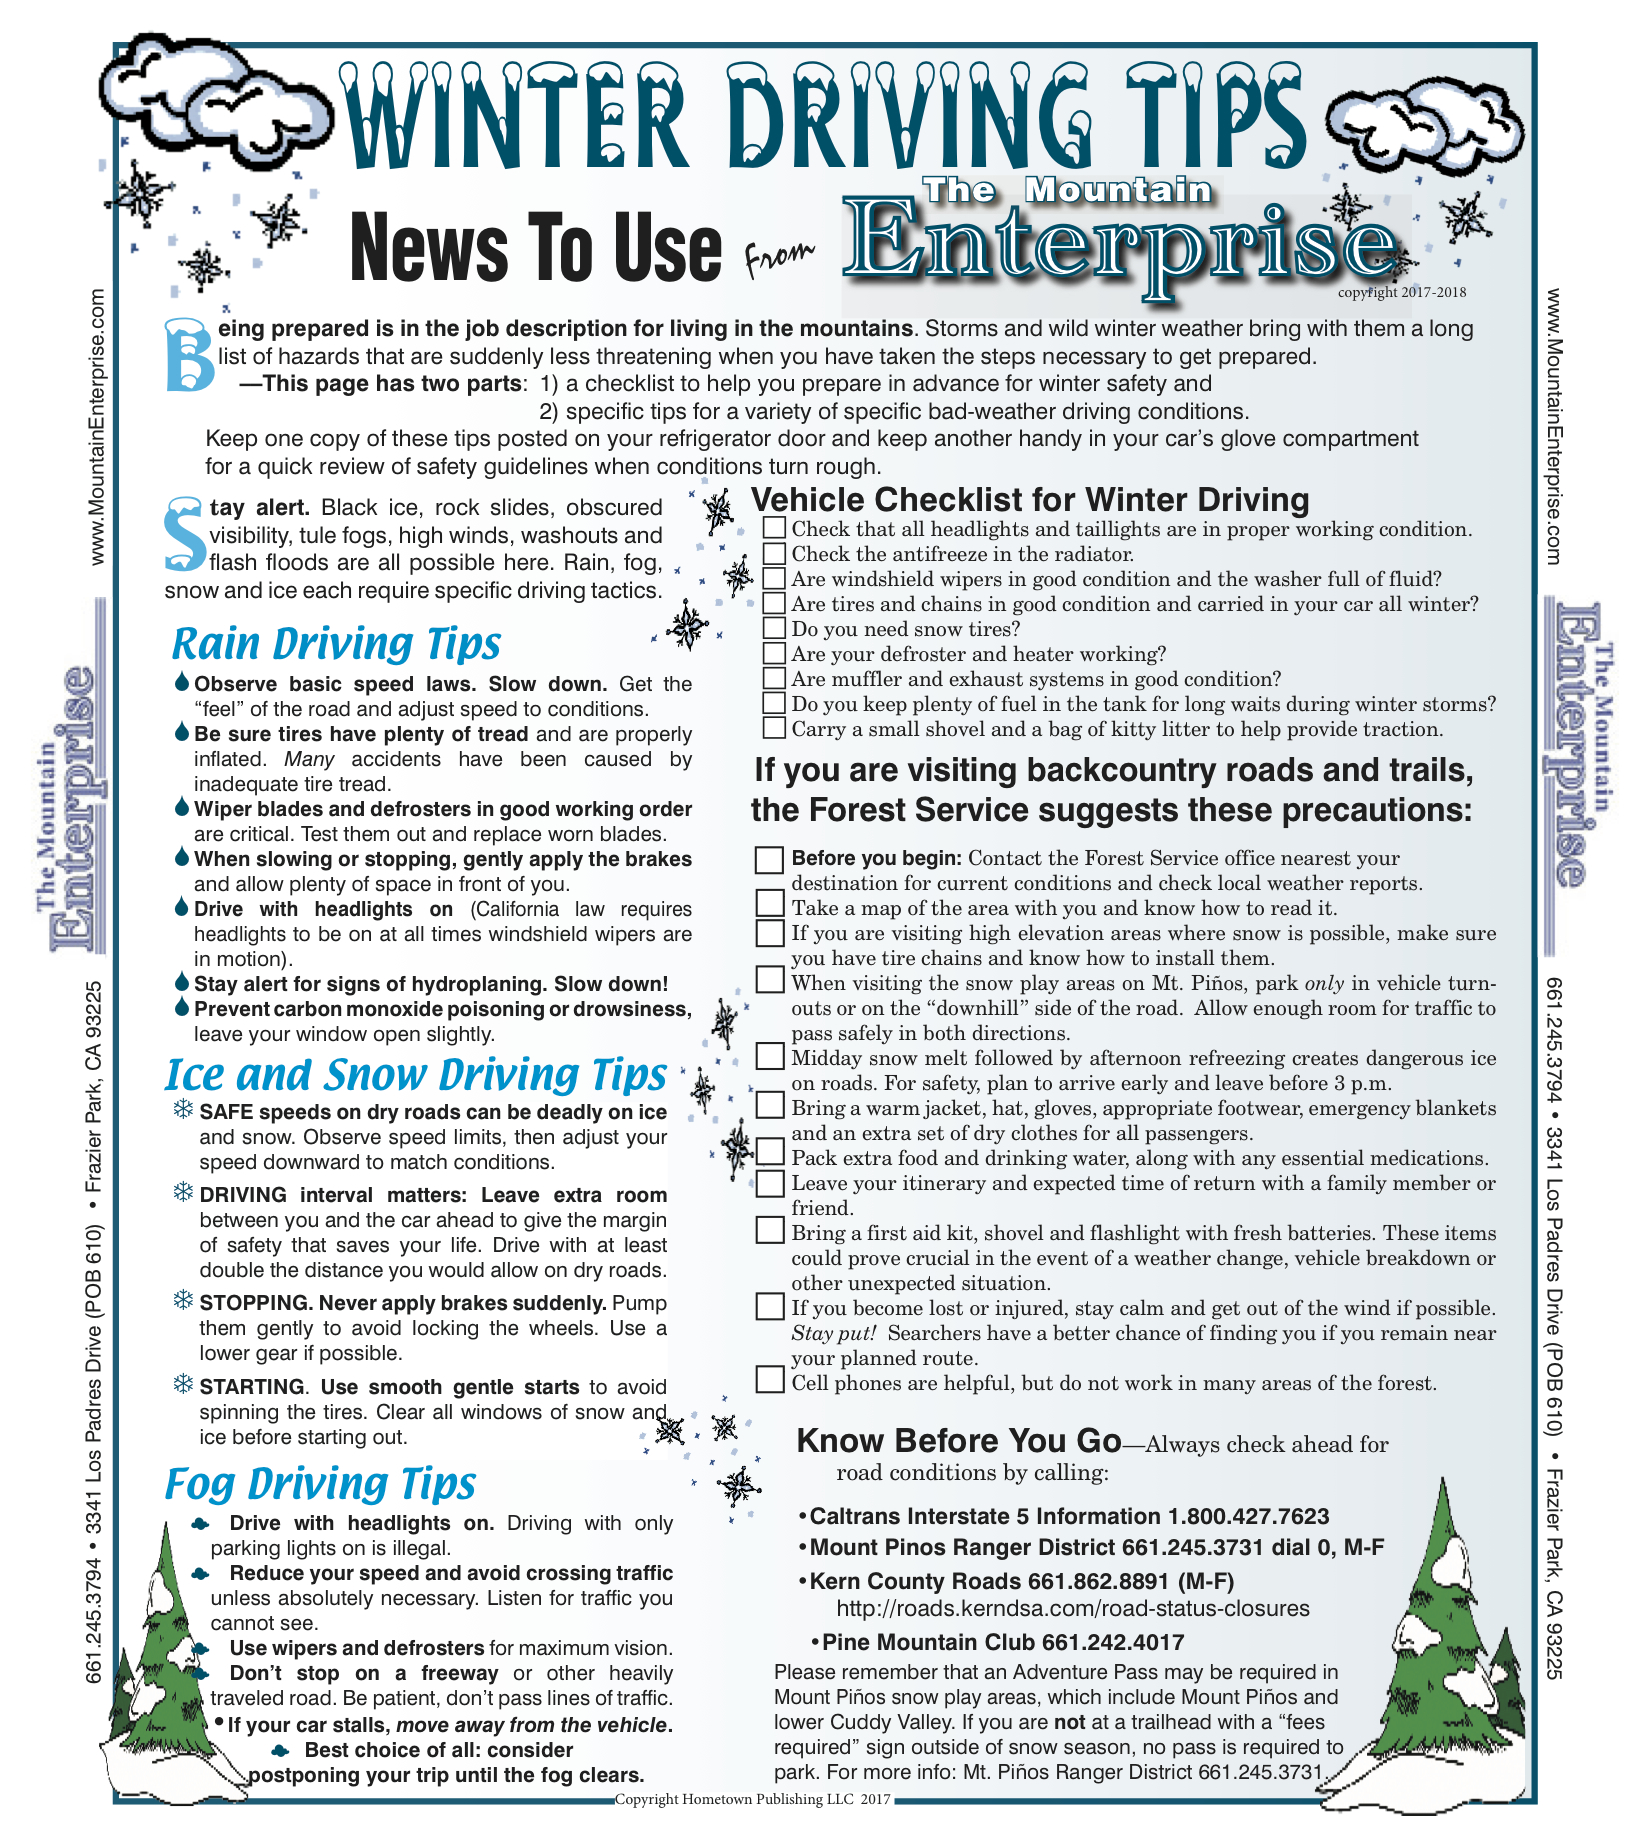 Double click on the image for a full-size printable version of Winter Driving Tips.